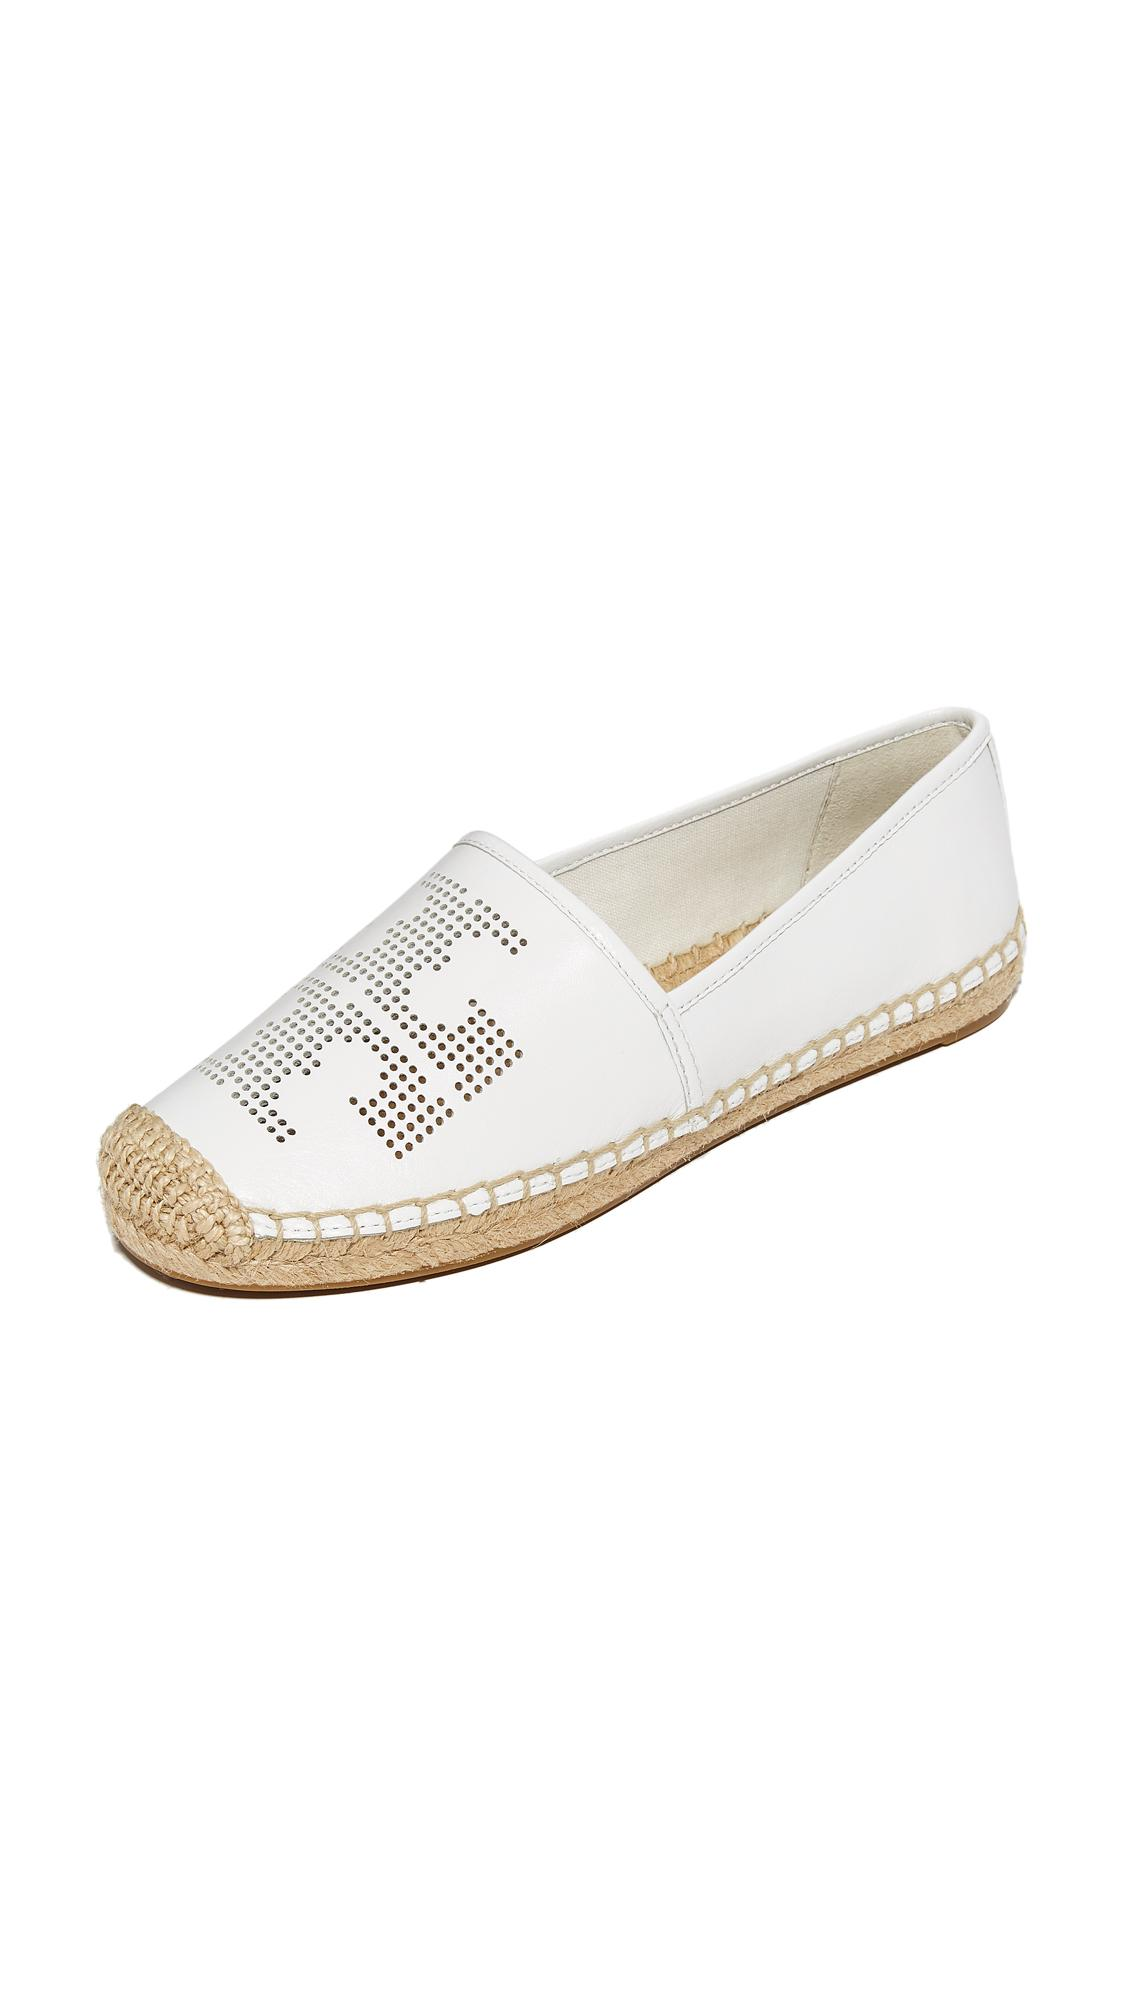 Lyst Tory Burch Perforated Logo Flat Espadrilles In White